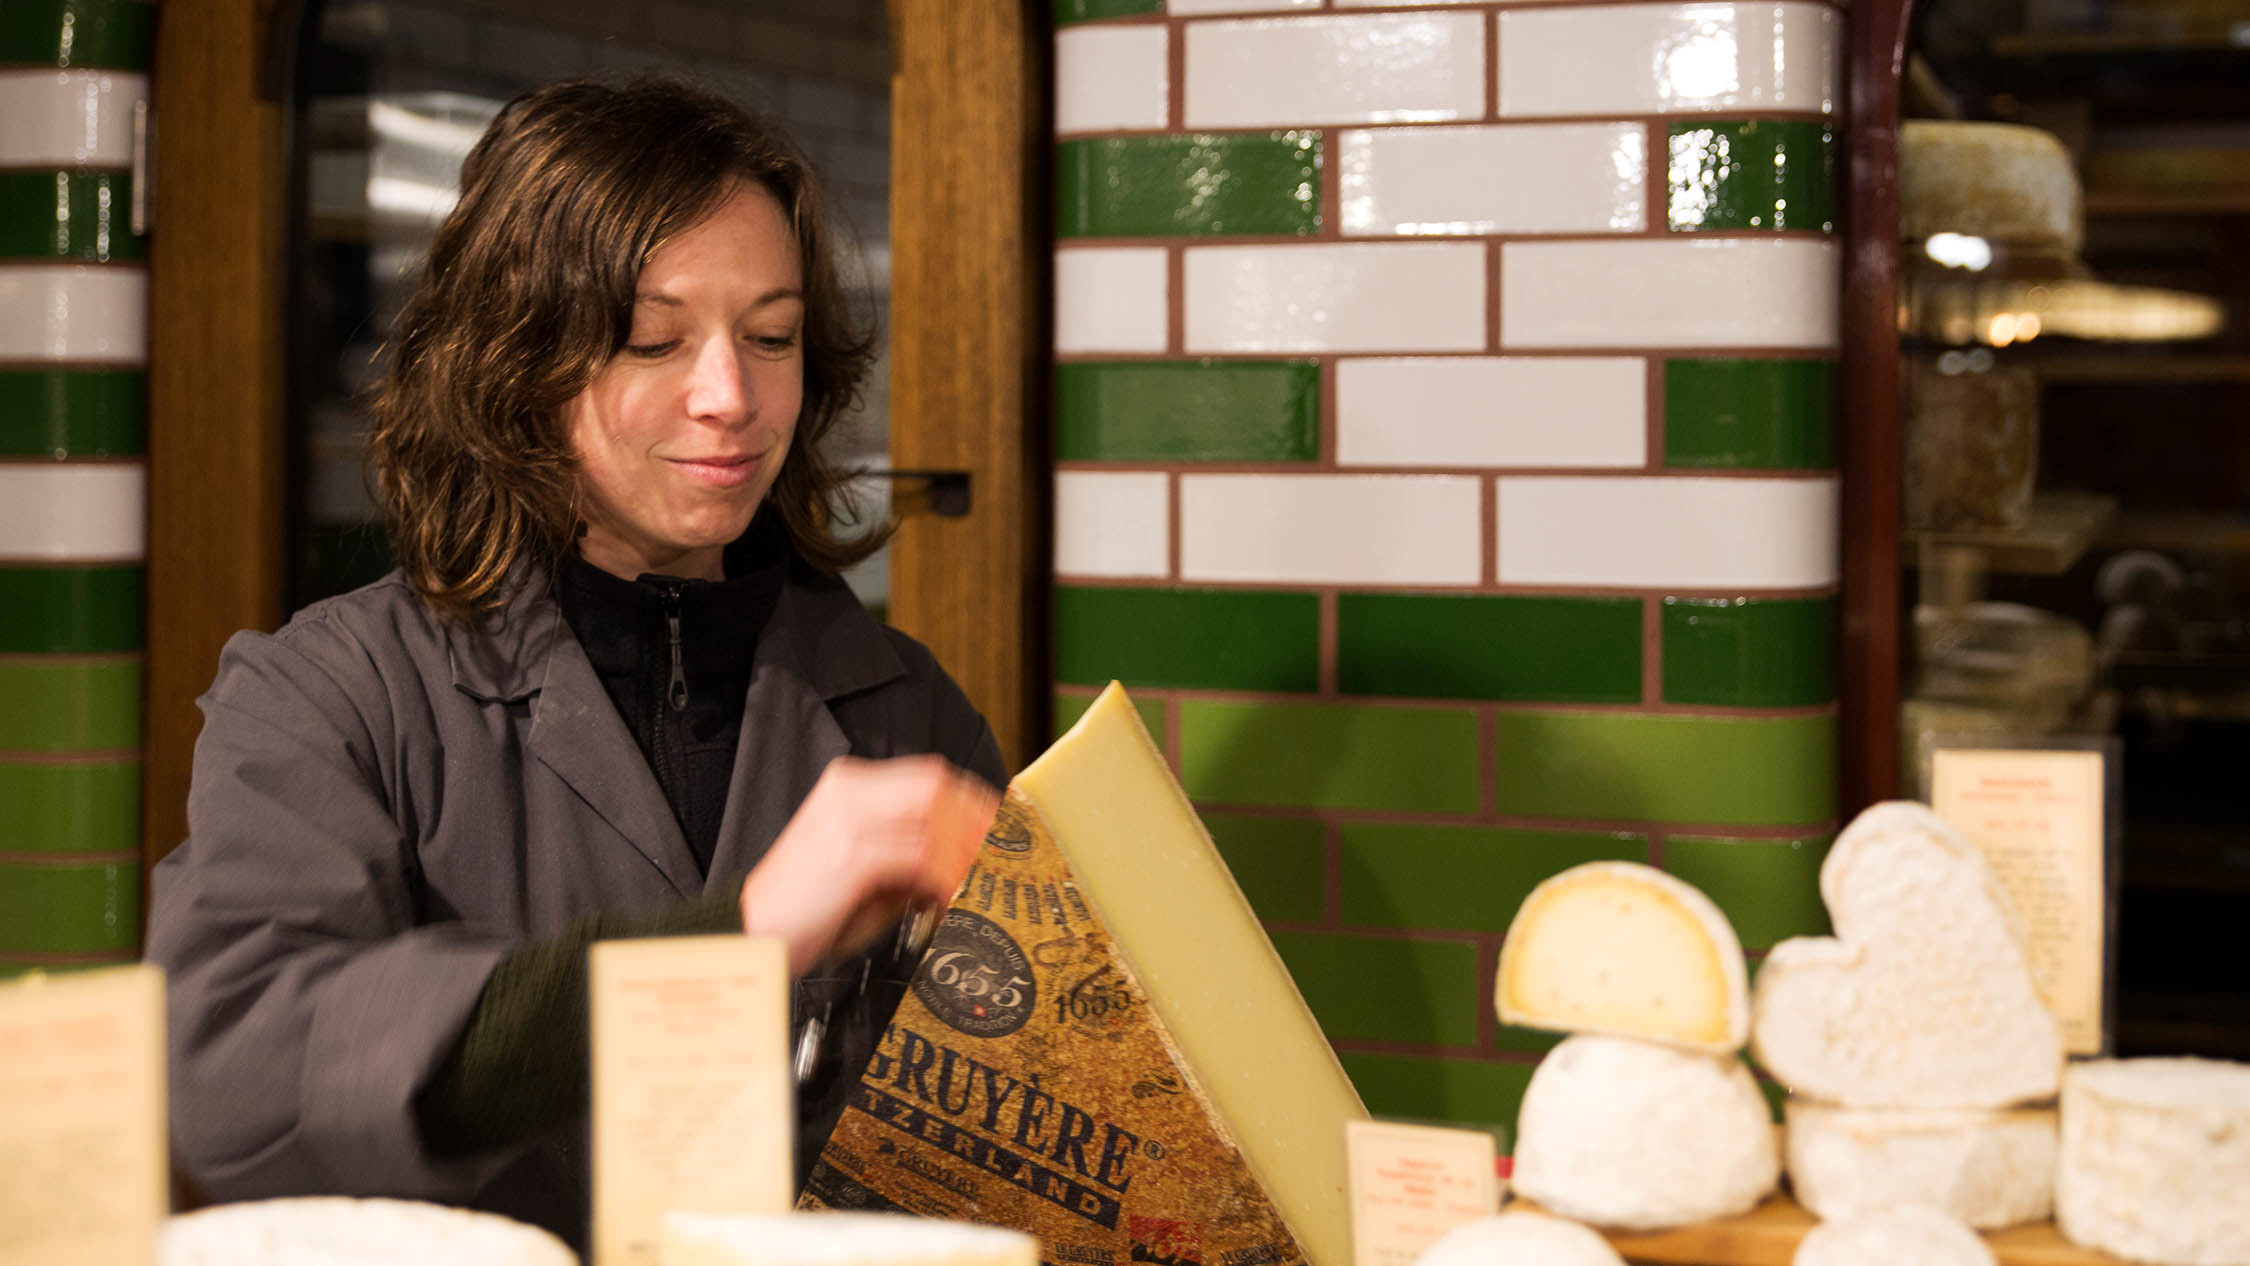 Things you only know if you're a cheesemonger